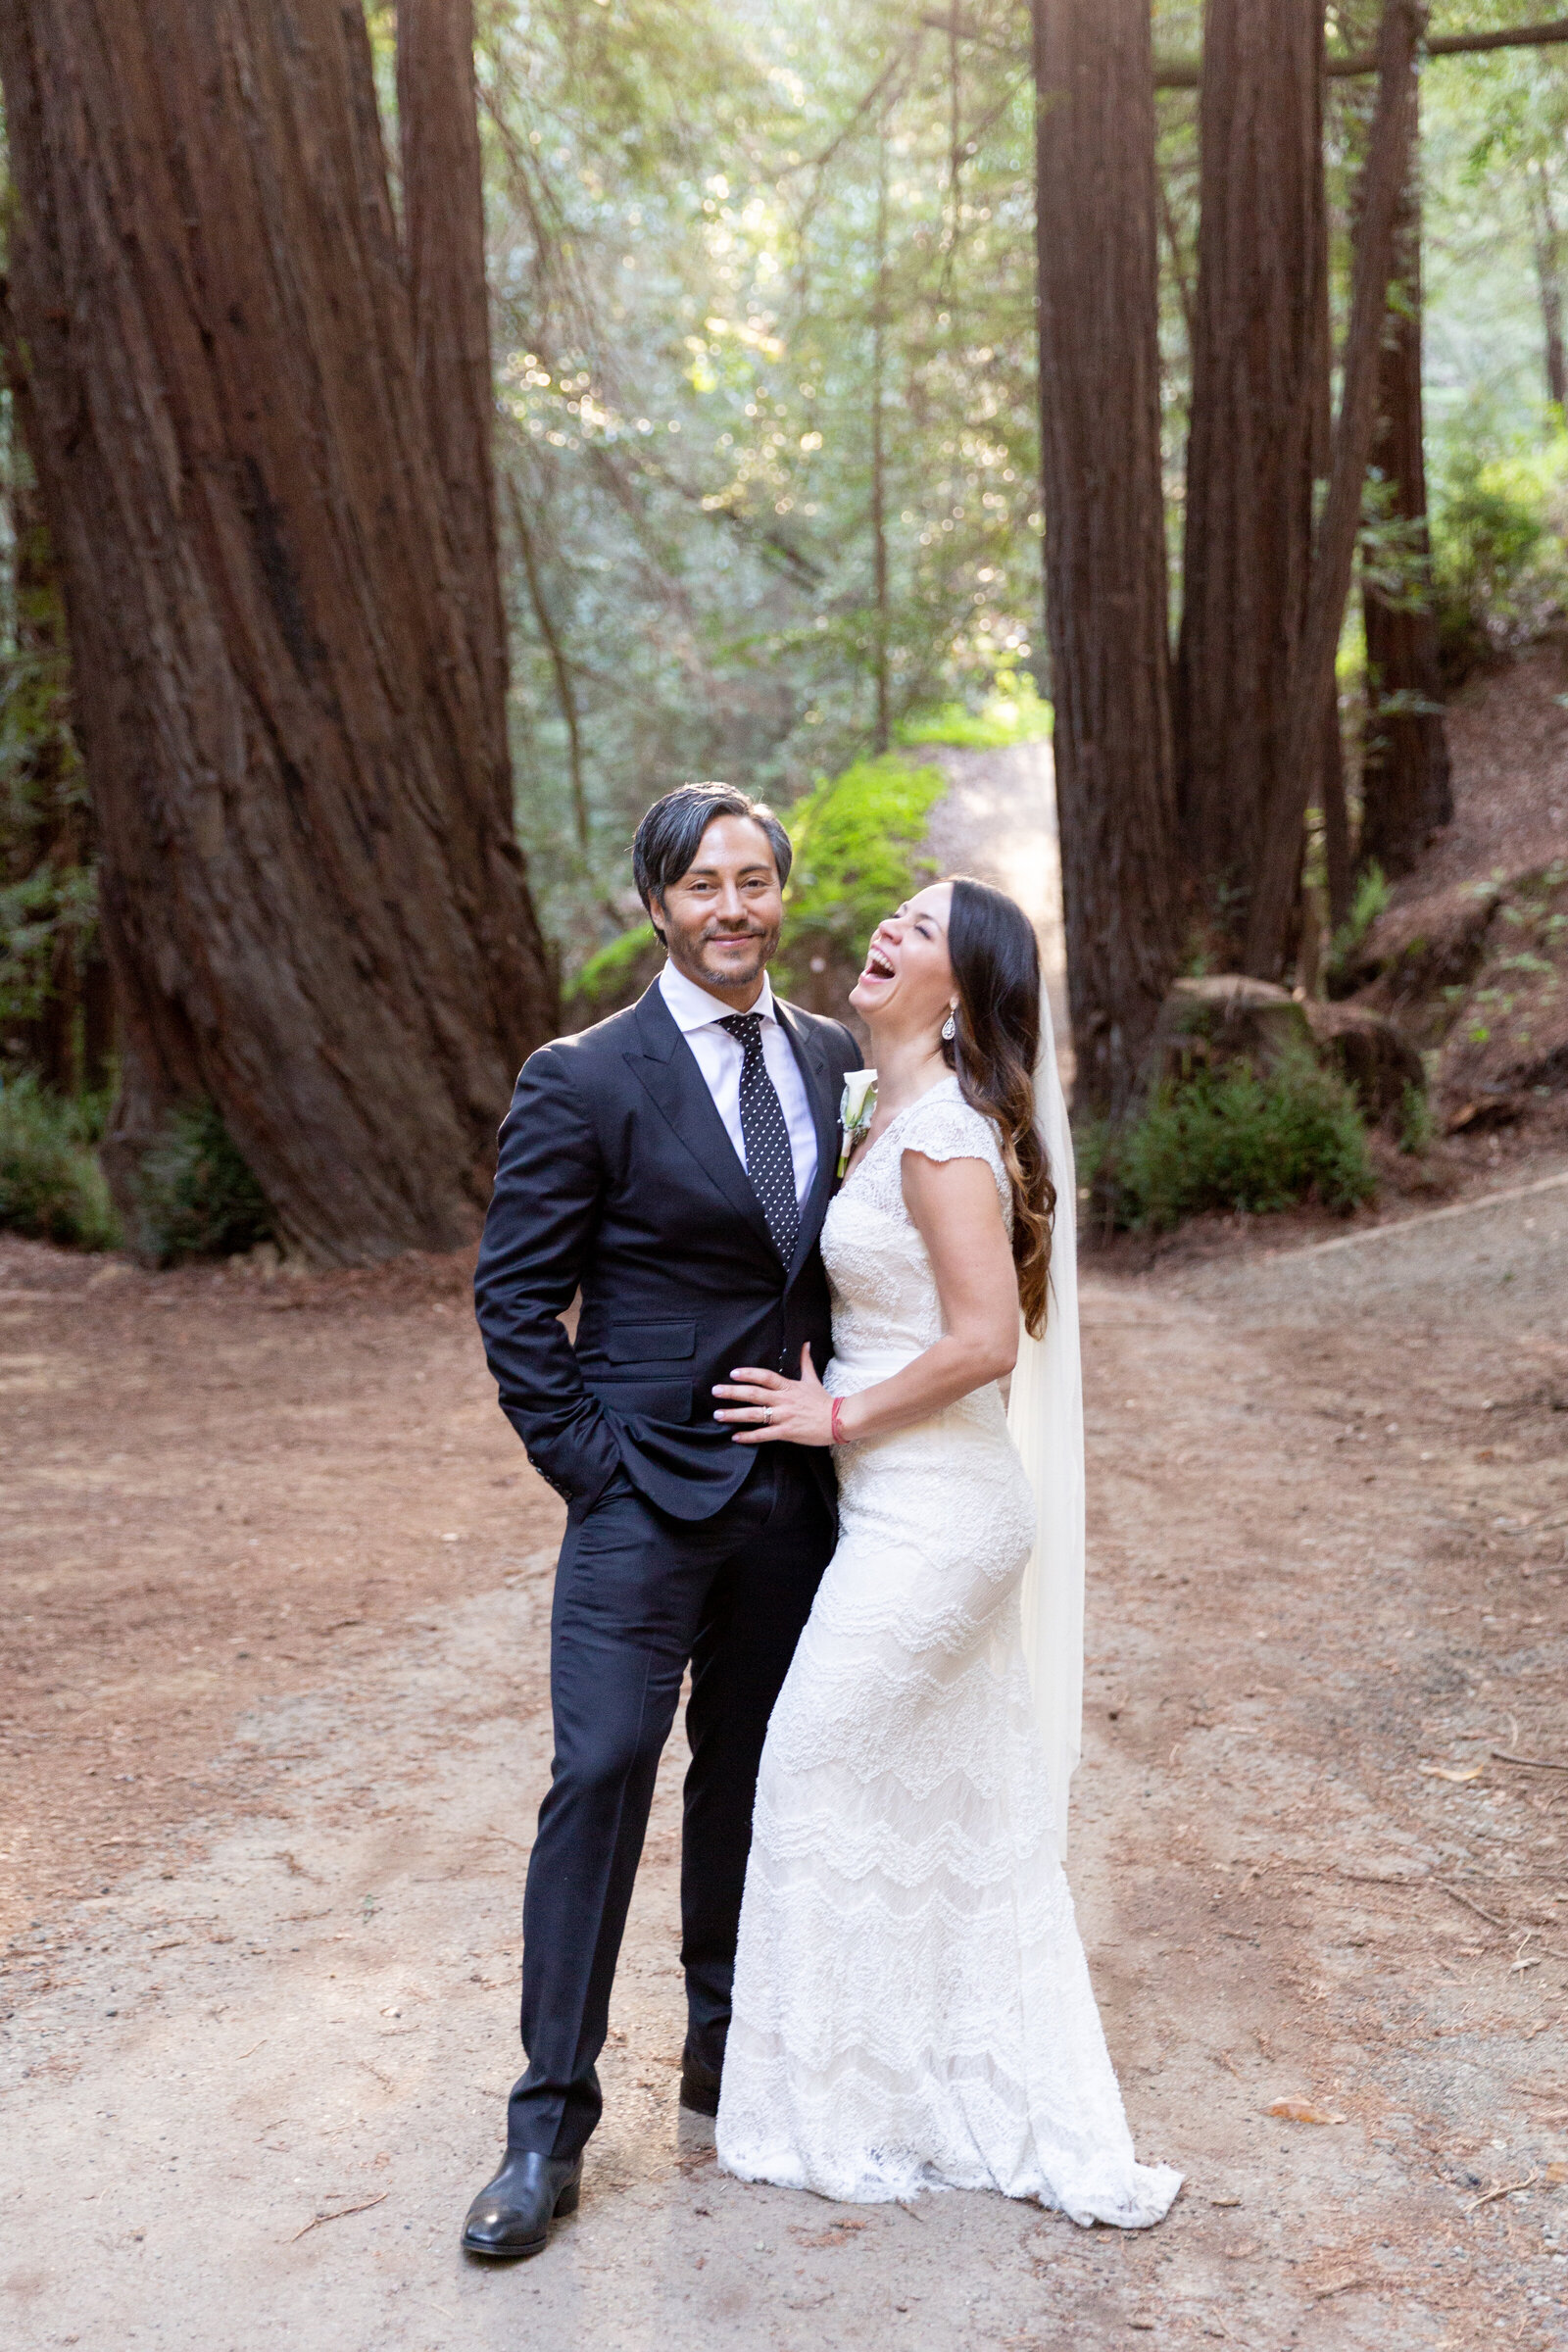 larissa-cleveland-elope-eleopement-intimate-wedding-photographer-san-francisco-napa-carmel-056